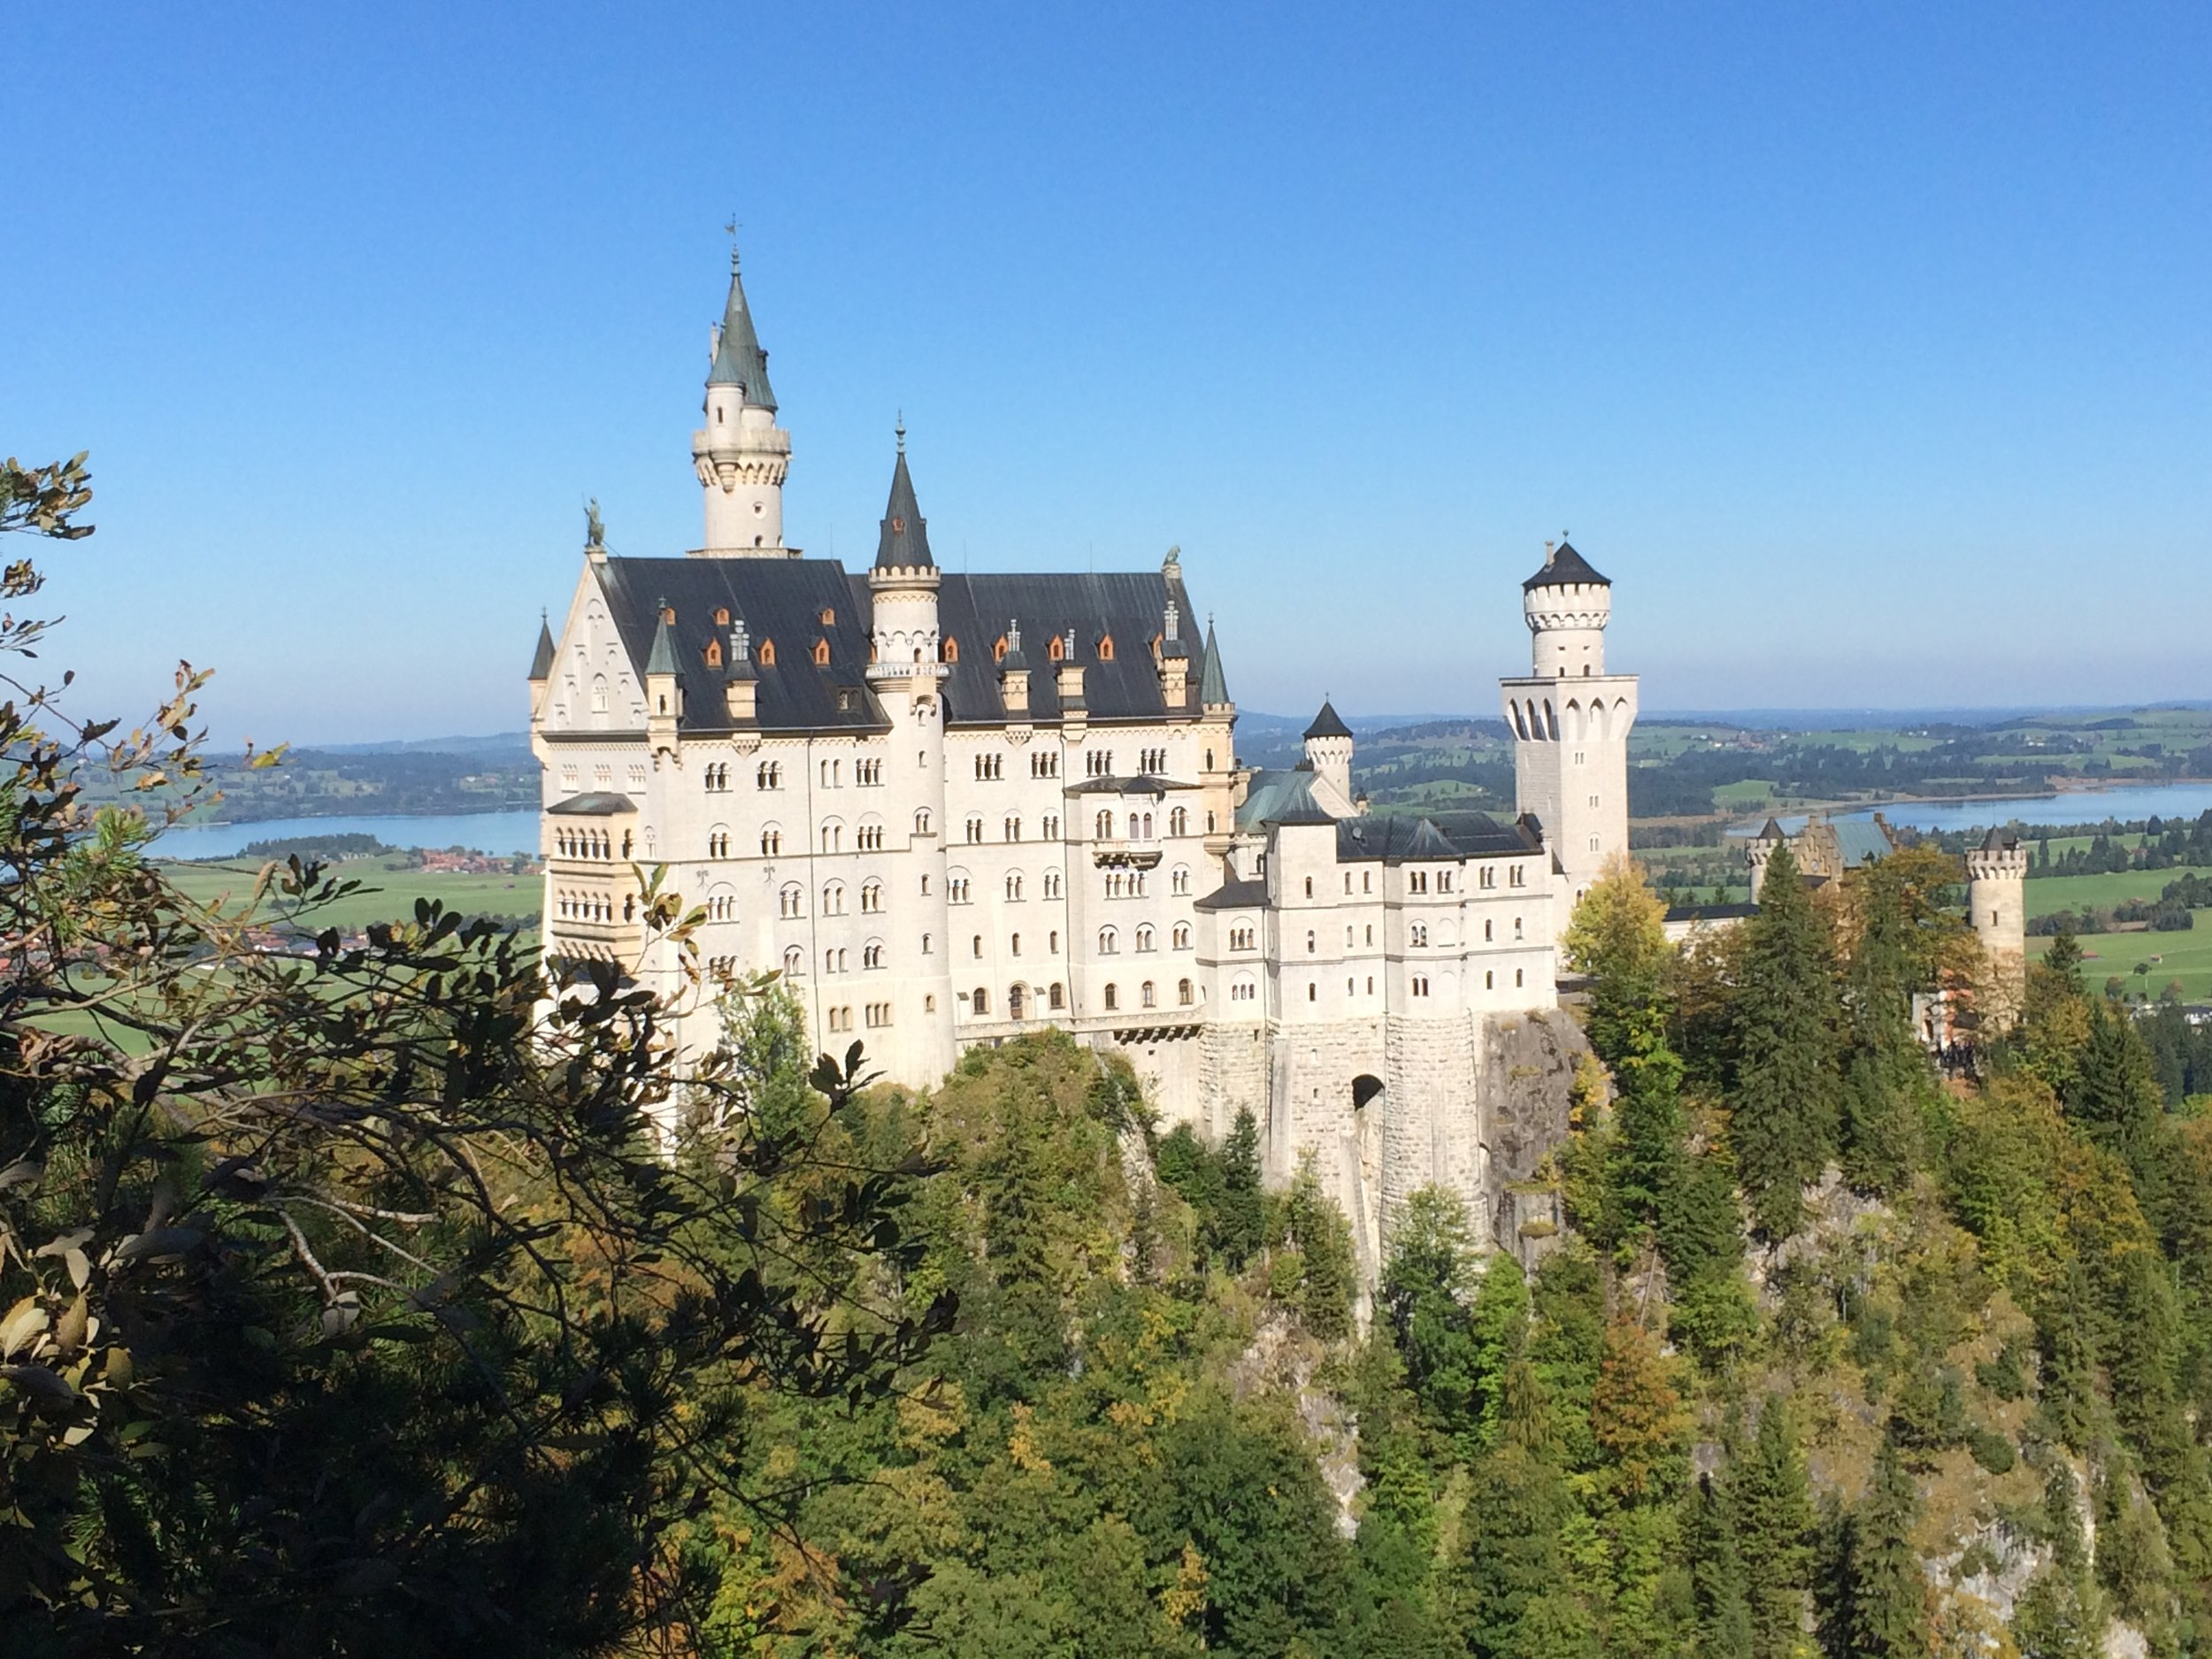 Among the sights I enjoyed in Germany was the scenic Neuschwanstein Castle, nestled in a valley near the Austrian border.